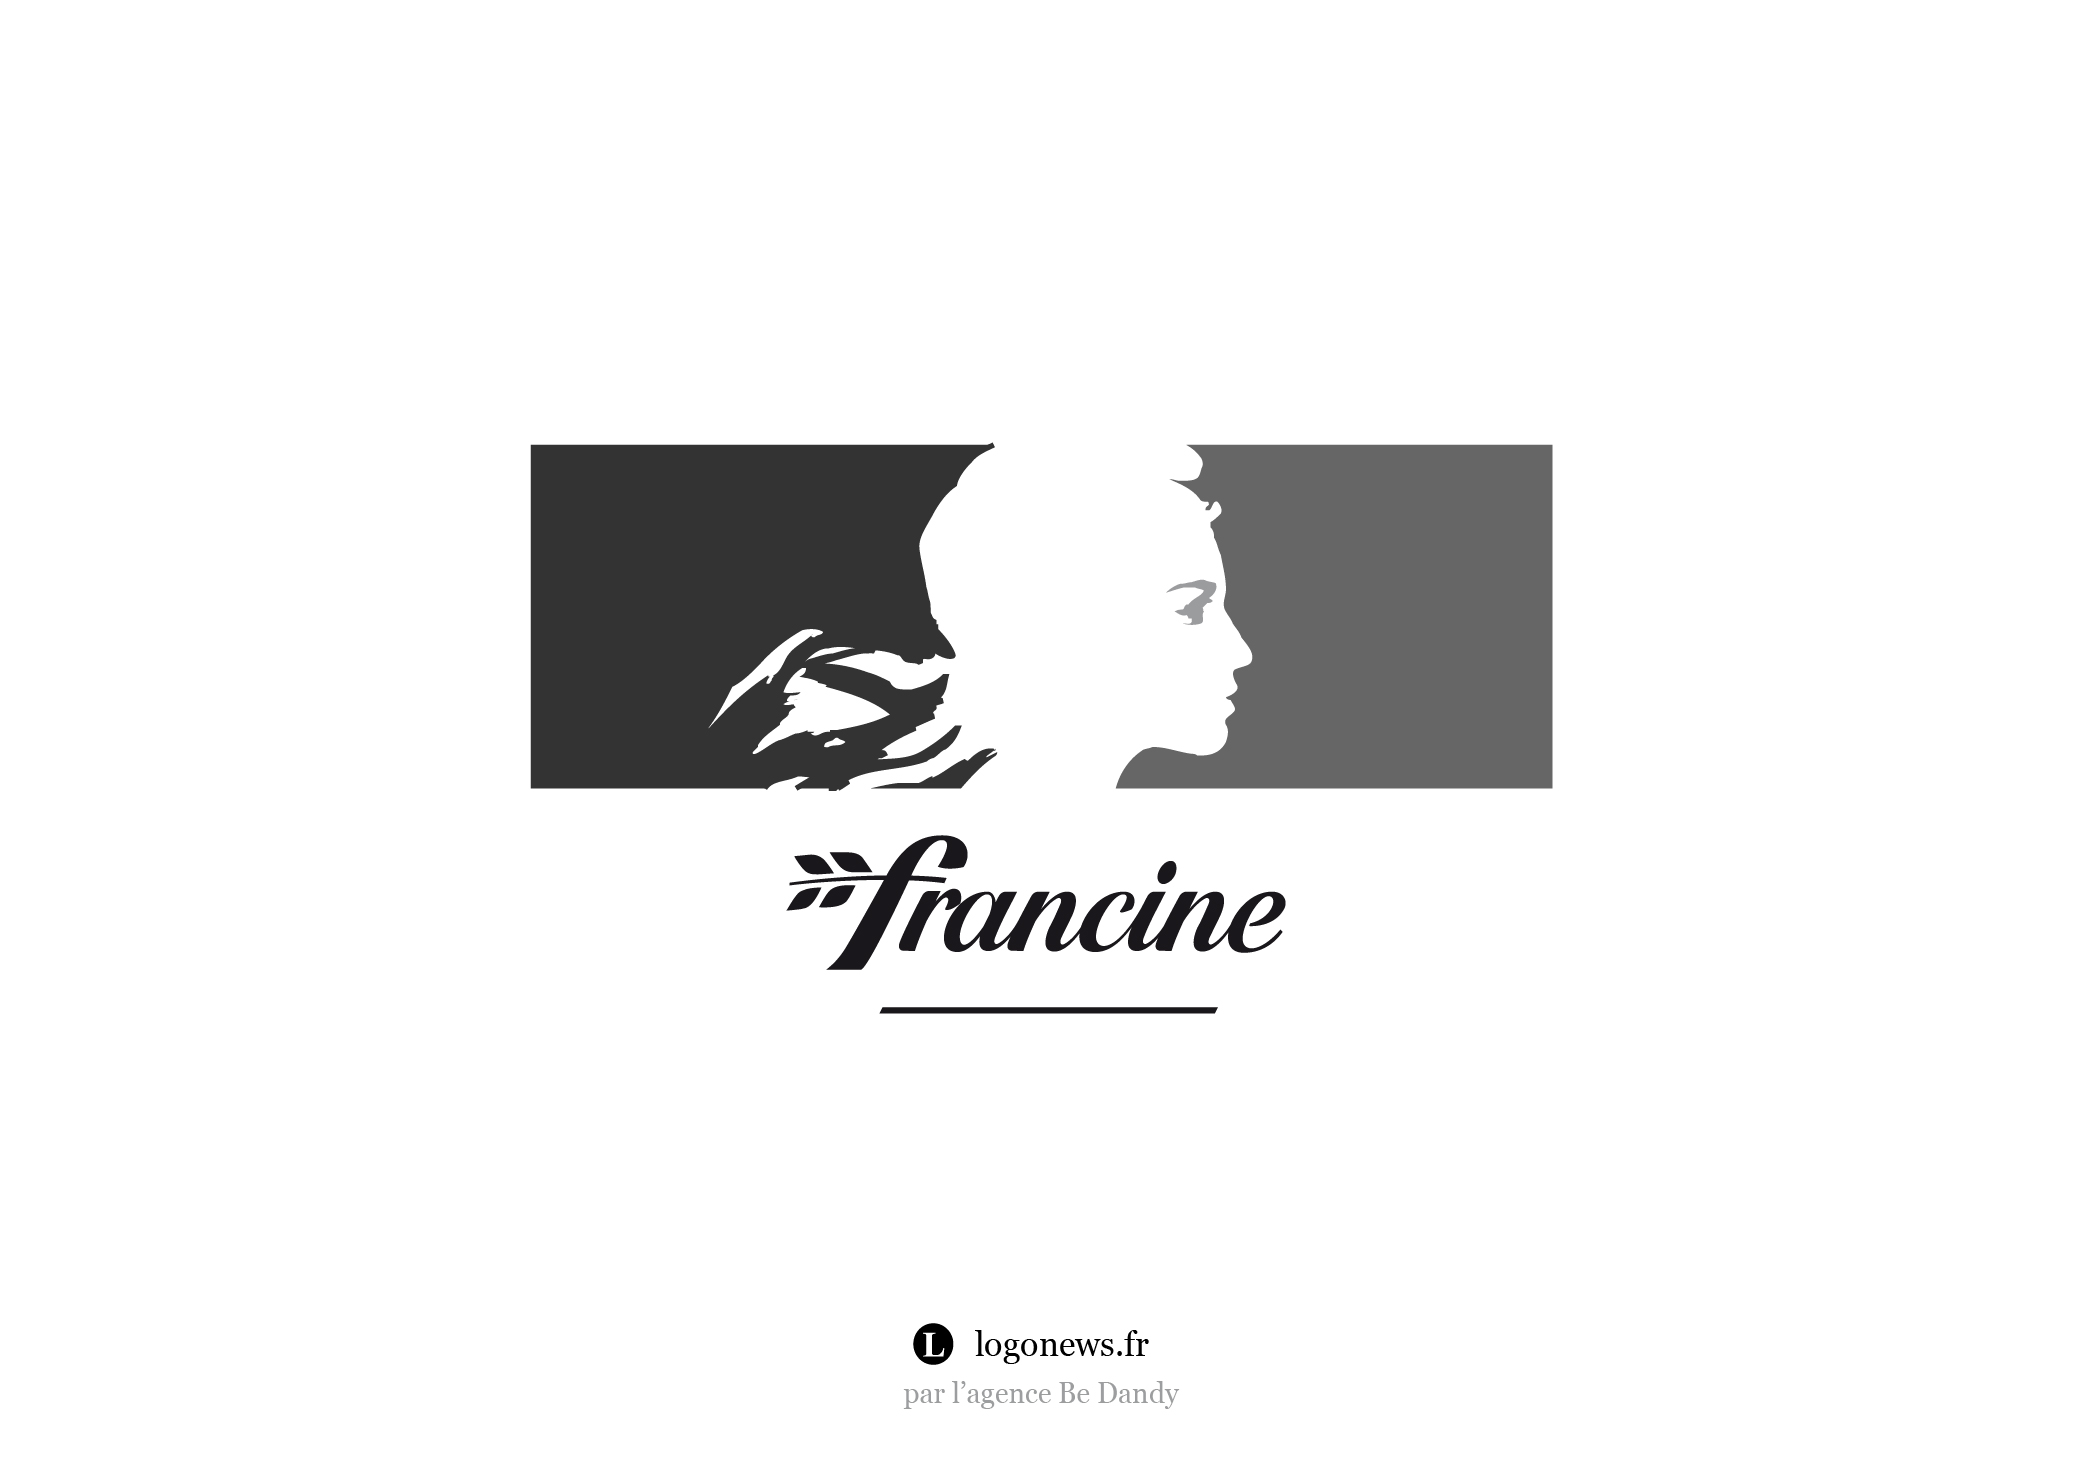 06_remix_logo_francine_republique_francaise